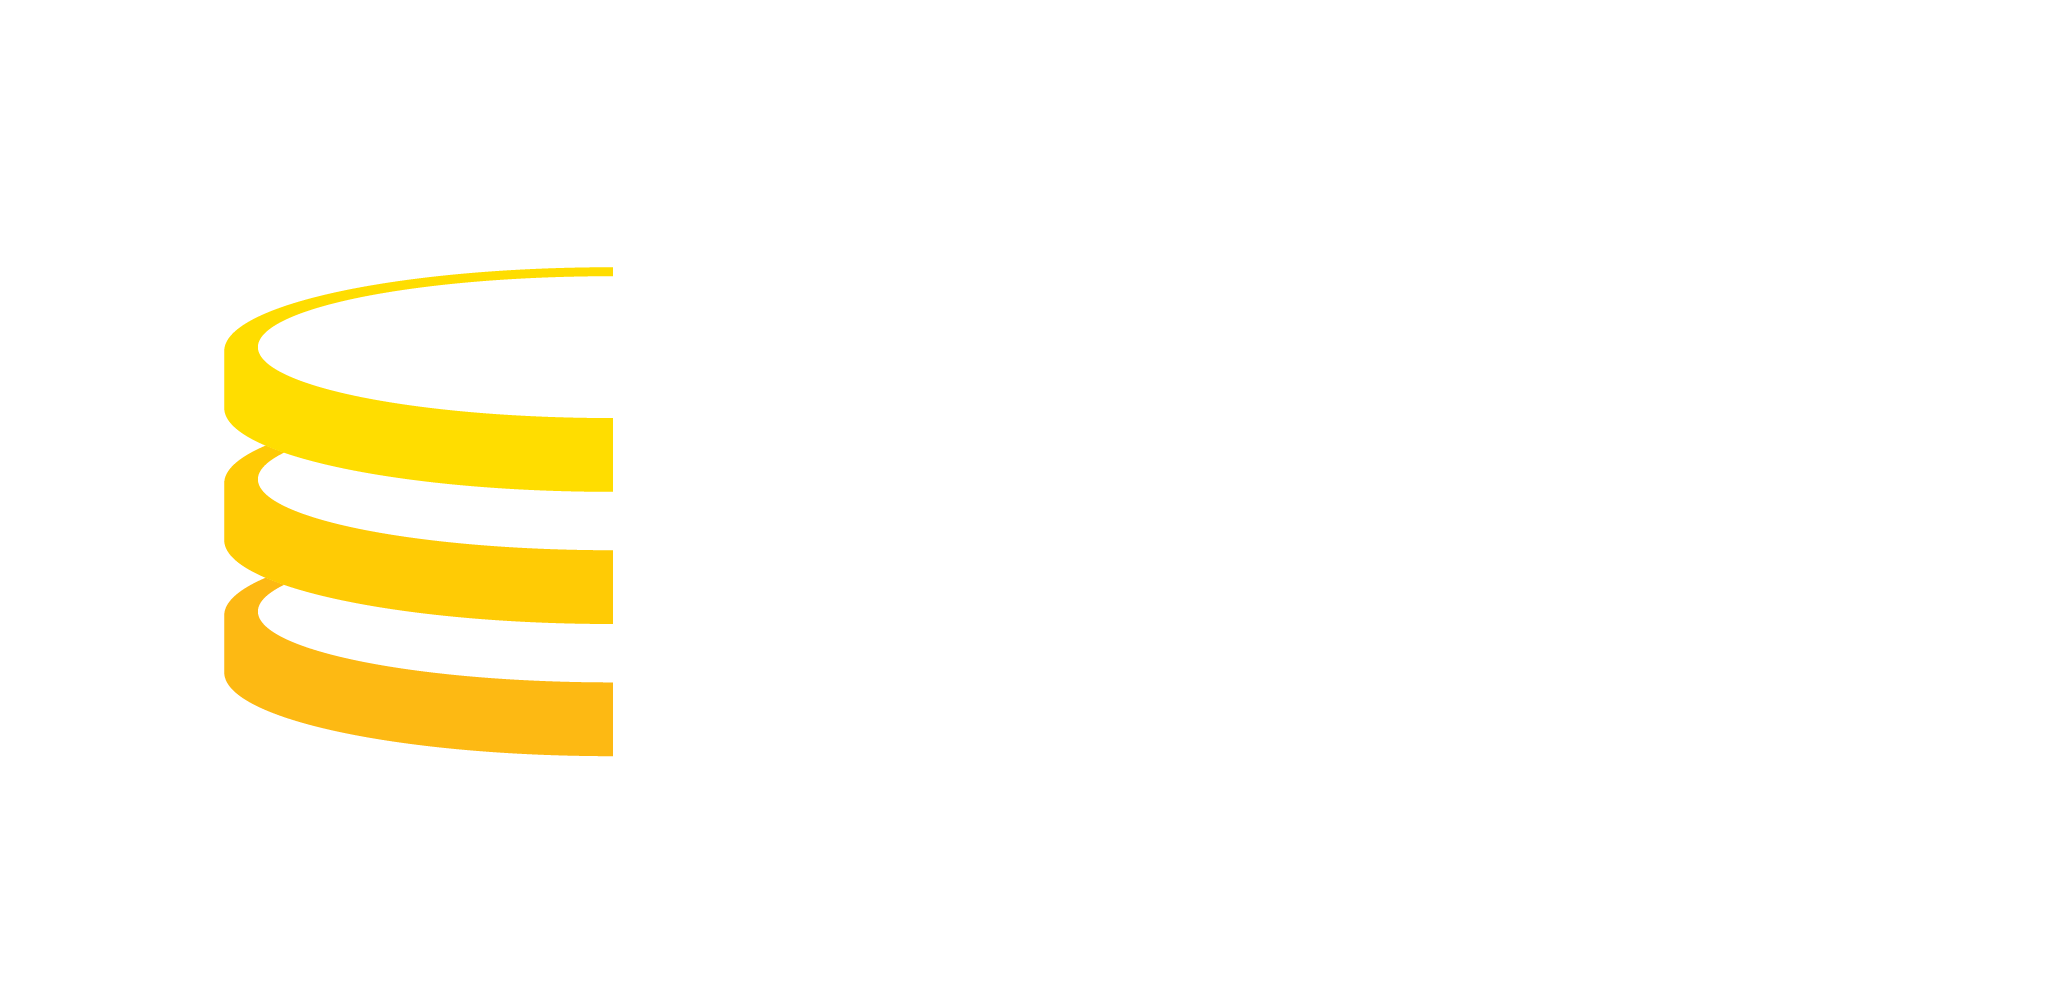 Monneta